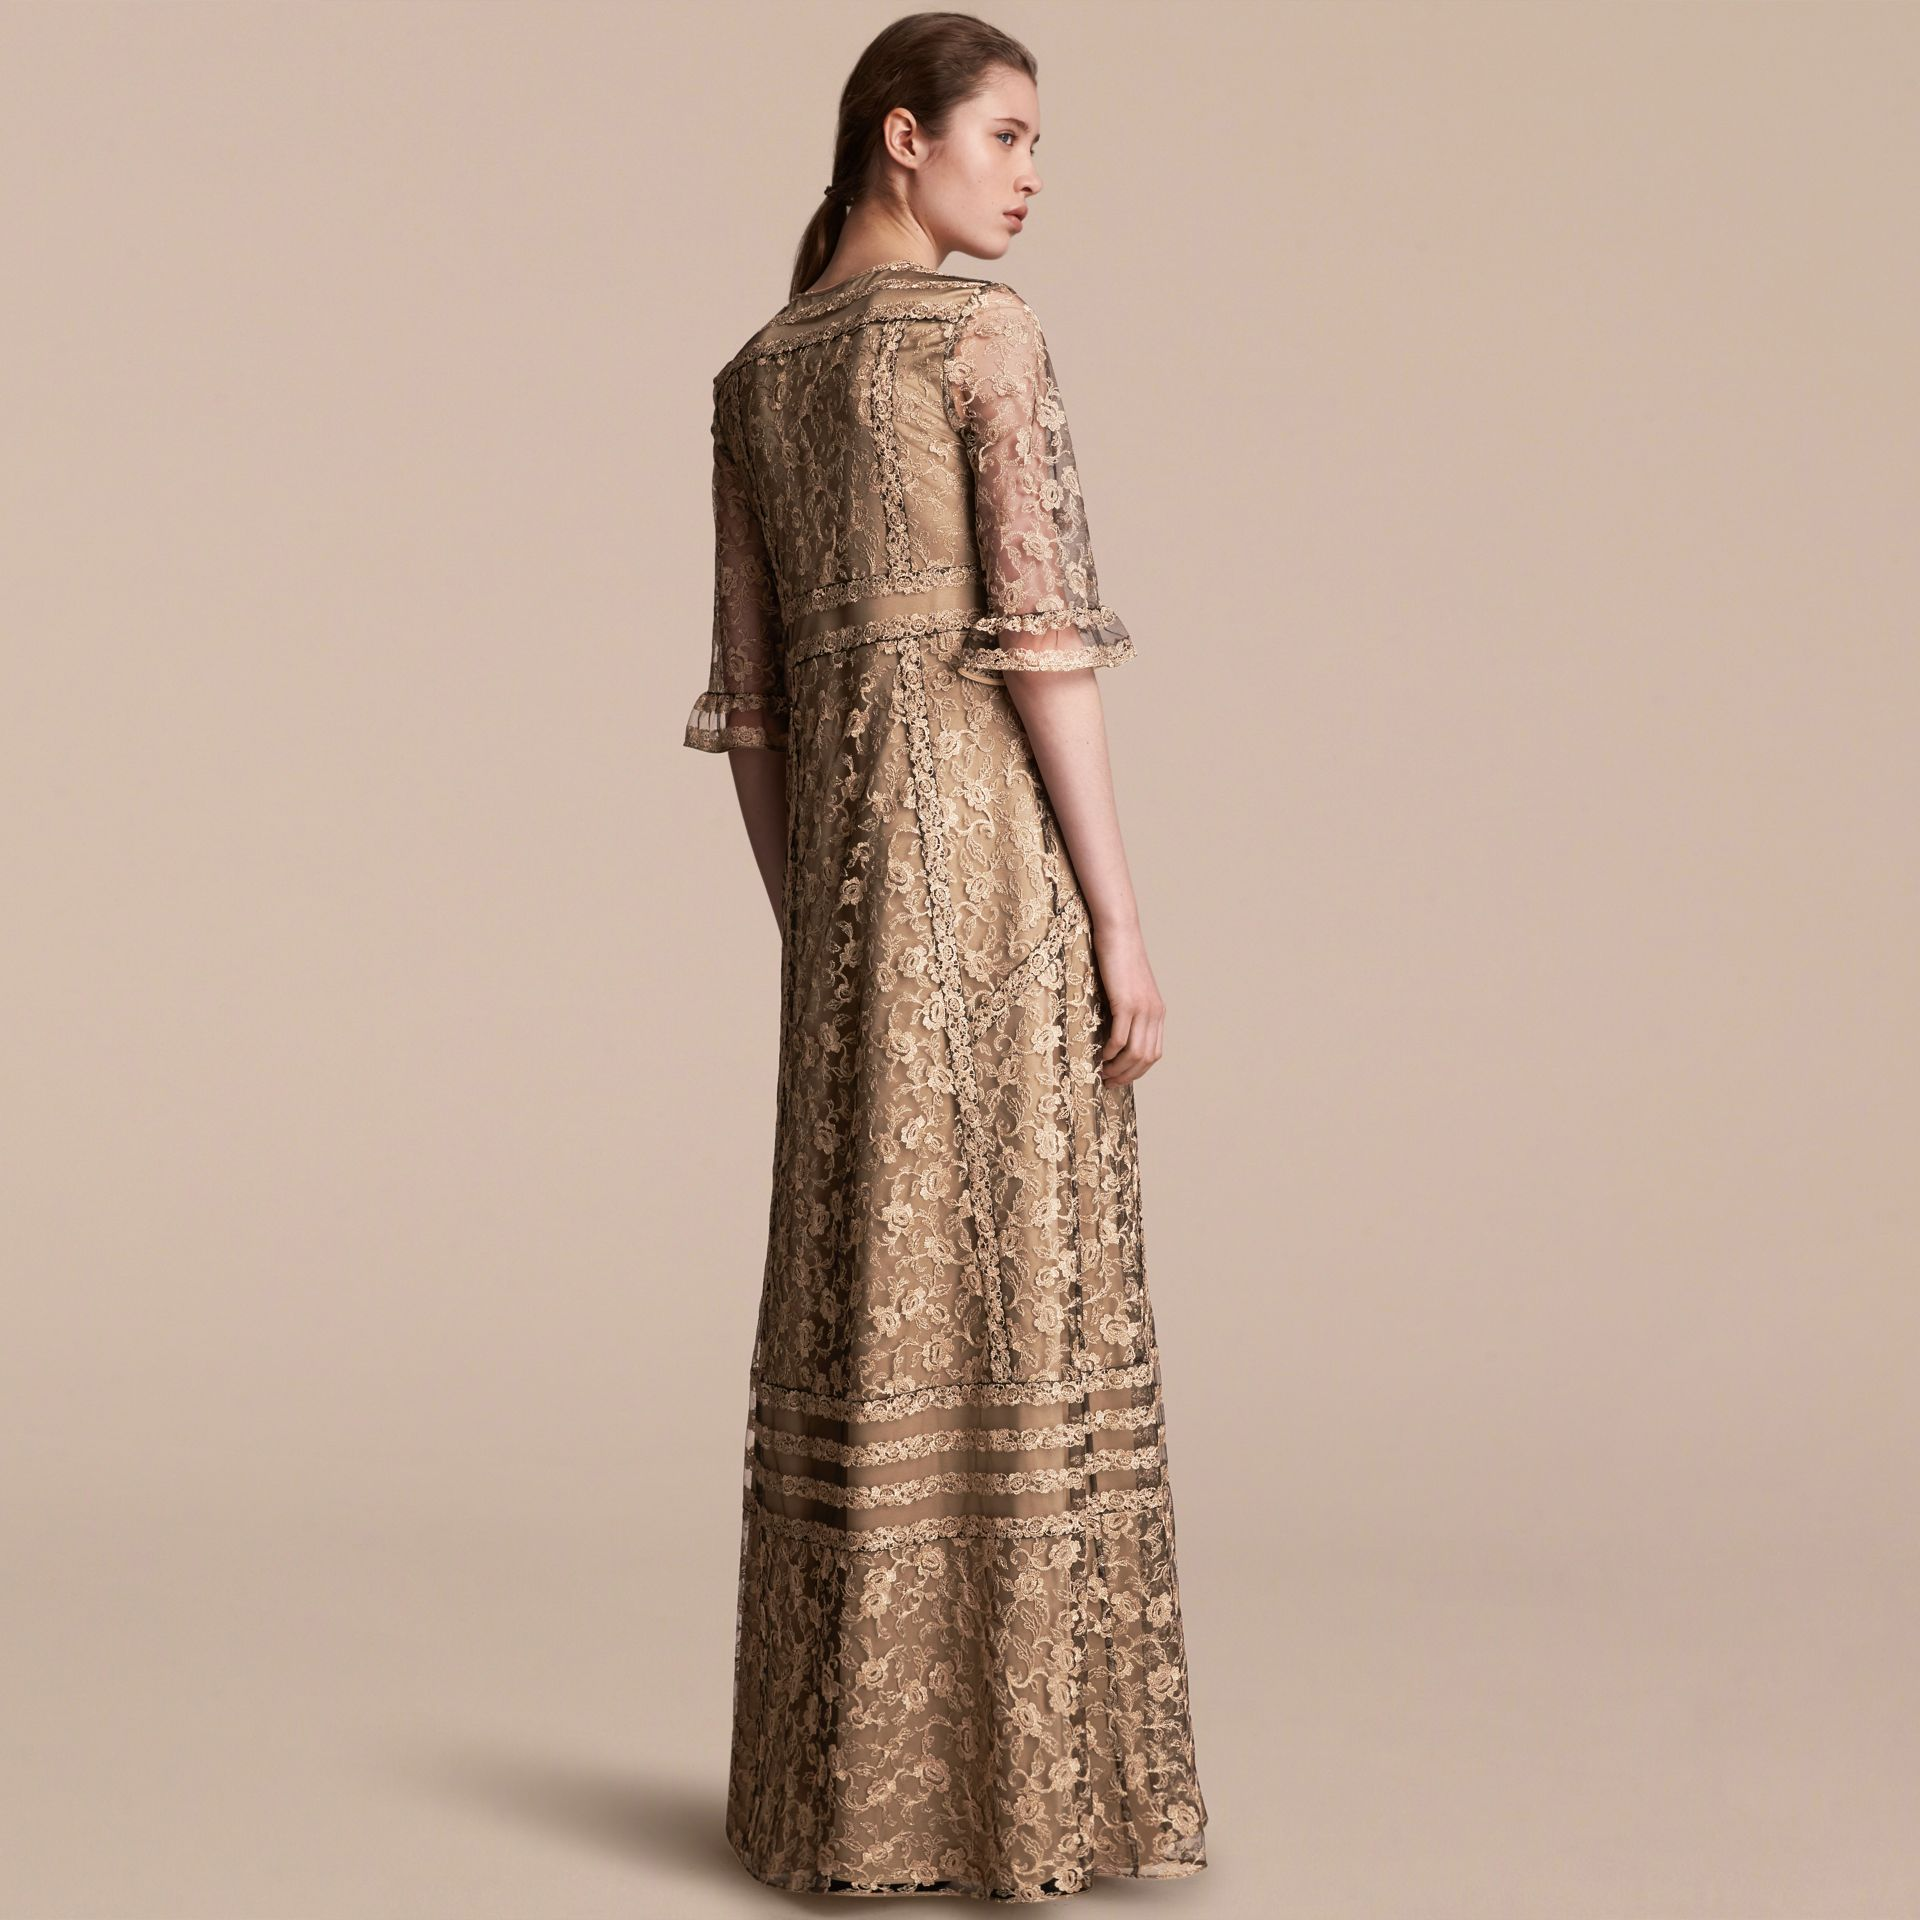 Floral Lace Tulle Dress in Gold - Women | Burberry - gallery image 3